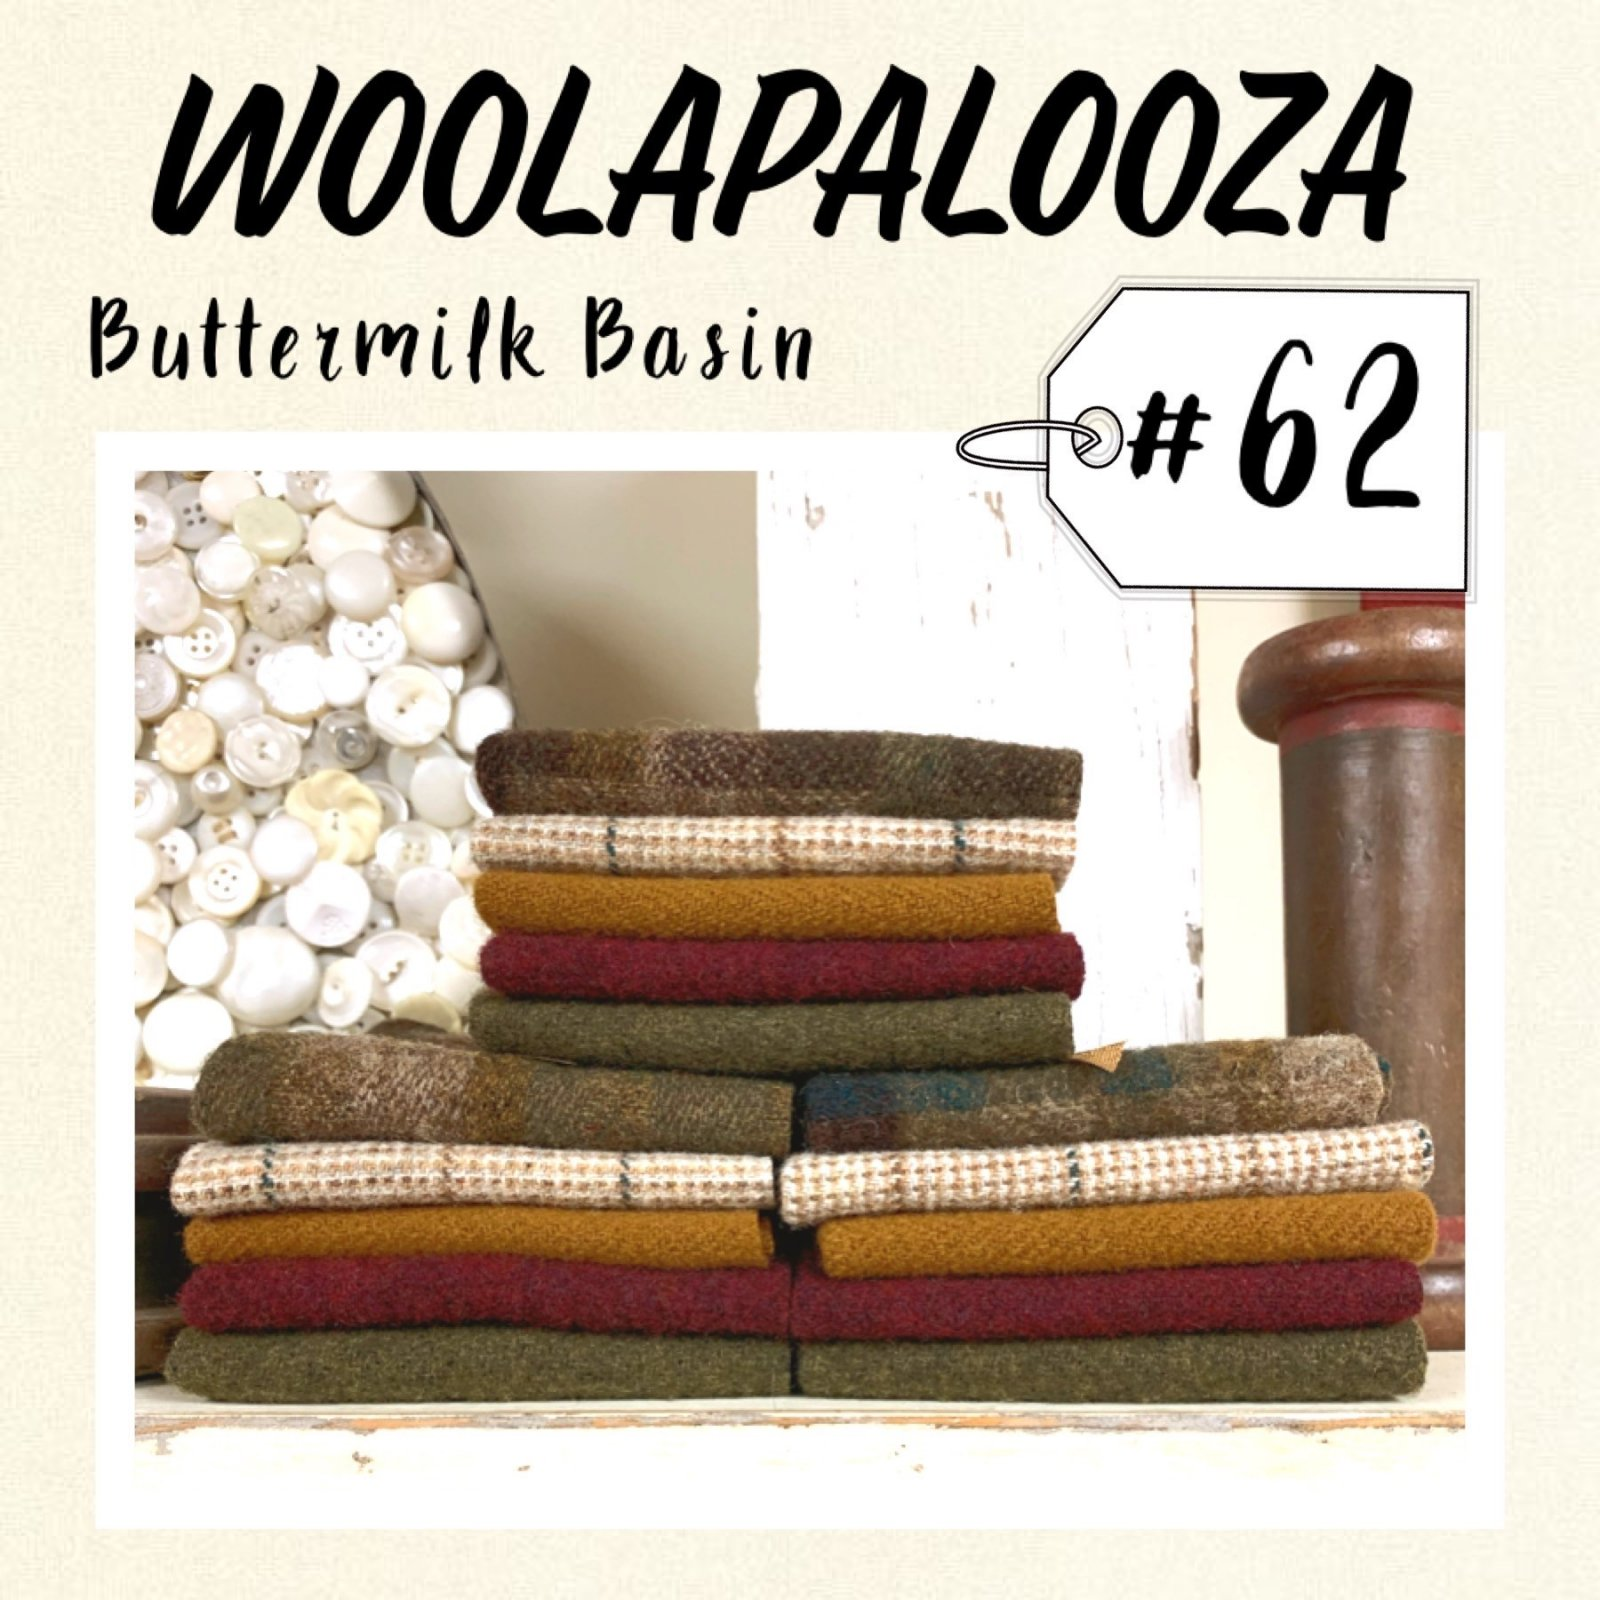 Woolapalooza #62 Wool Bundle